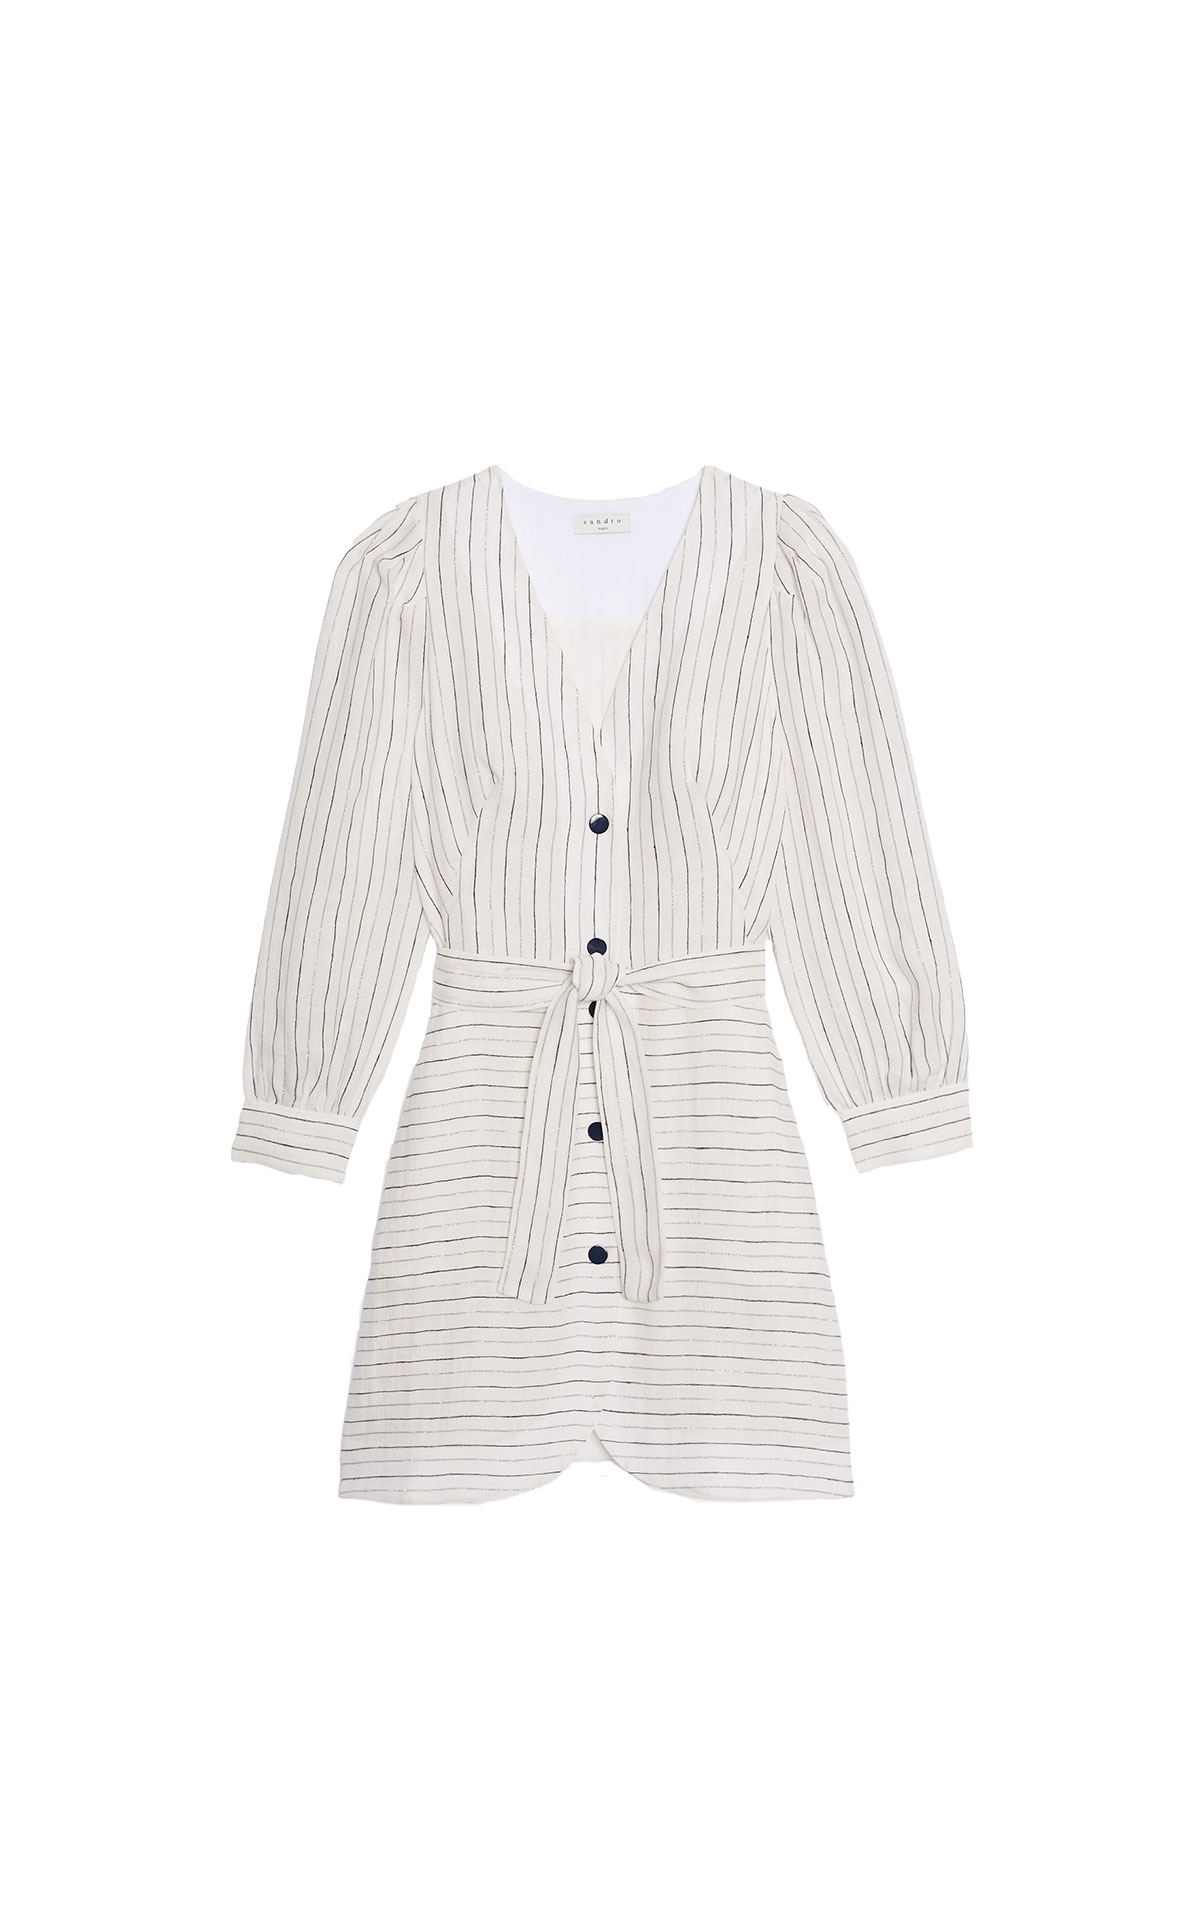 Sandro fancy striped coat dress at the bicester village shopping collection